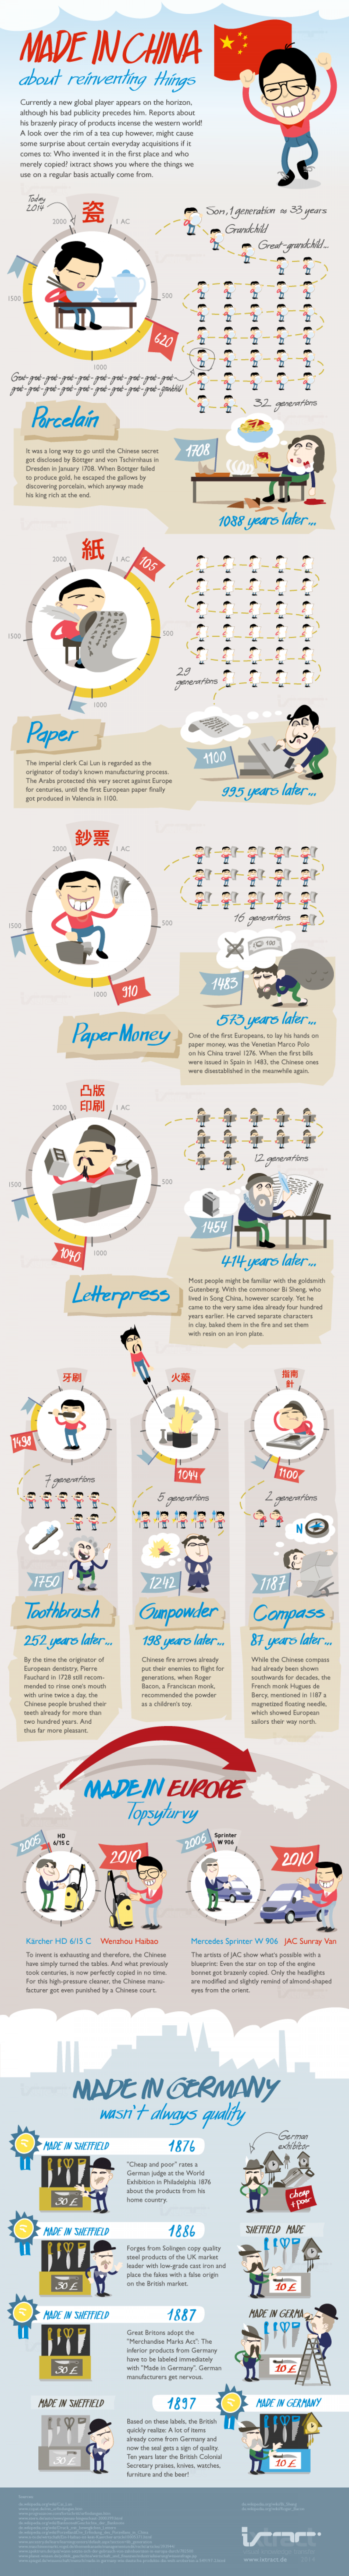 Made in China - About Reinventing Things Infographic